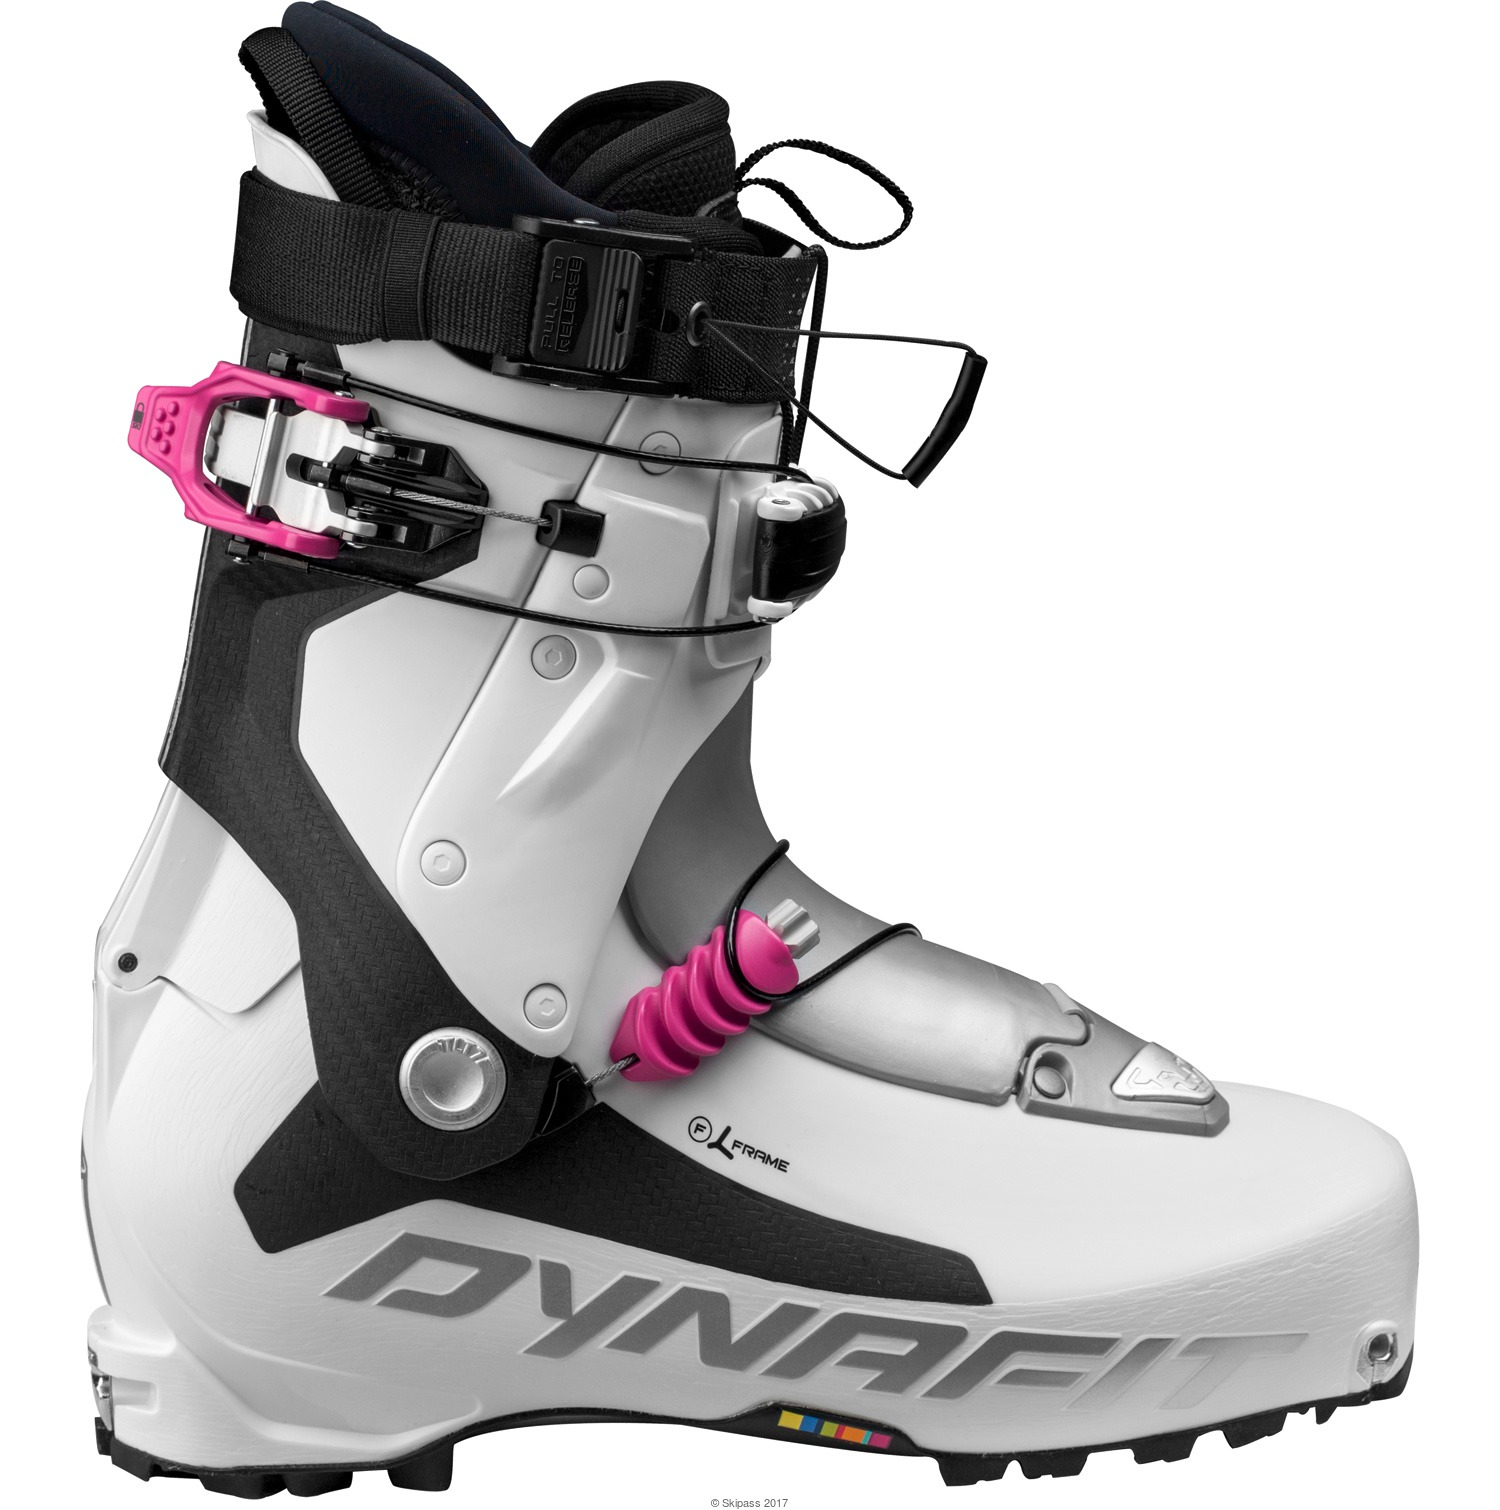 Dynafit Chaussures TLT7 Expedition CL WS White-Fuschia - Chaussures Ski